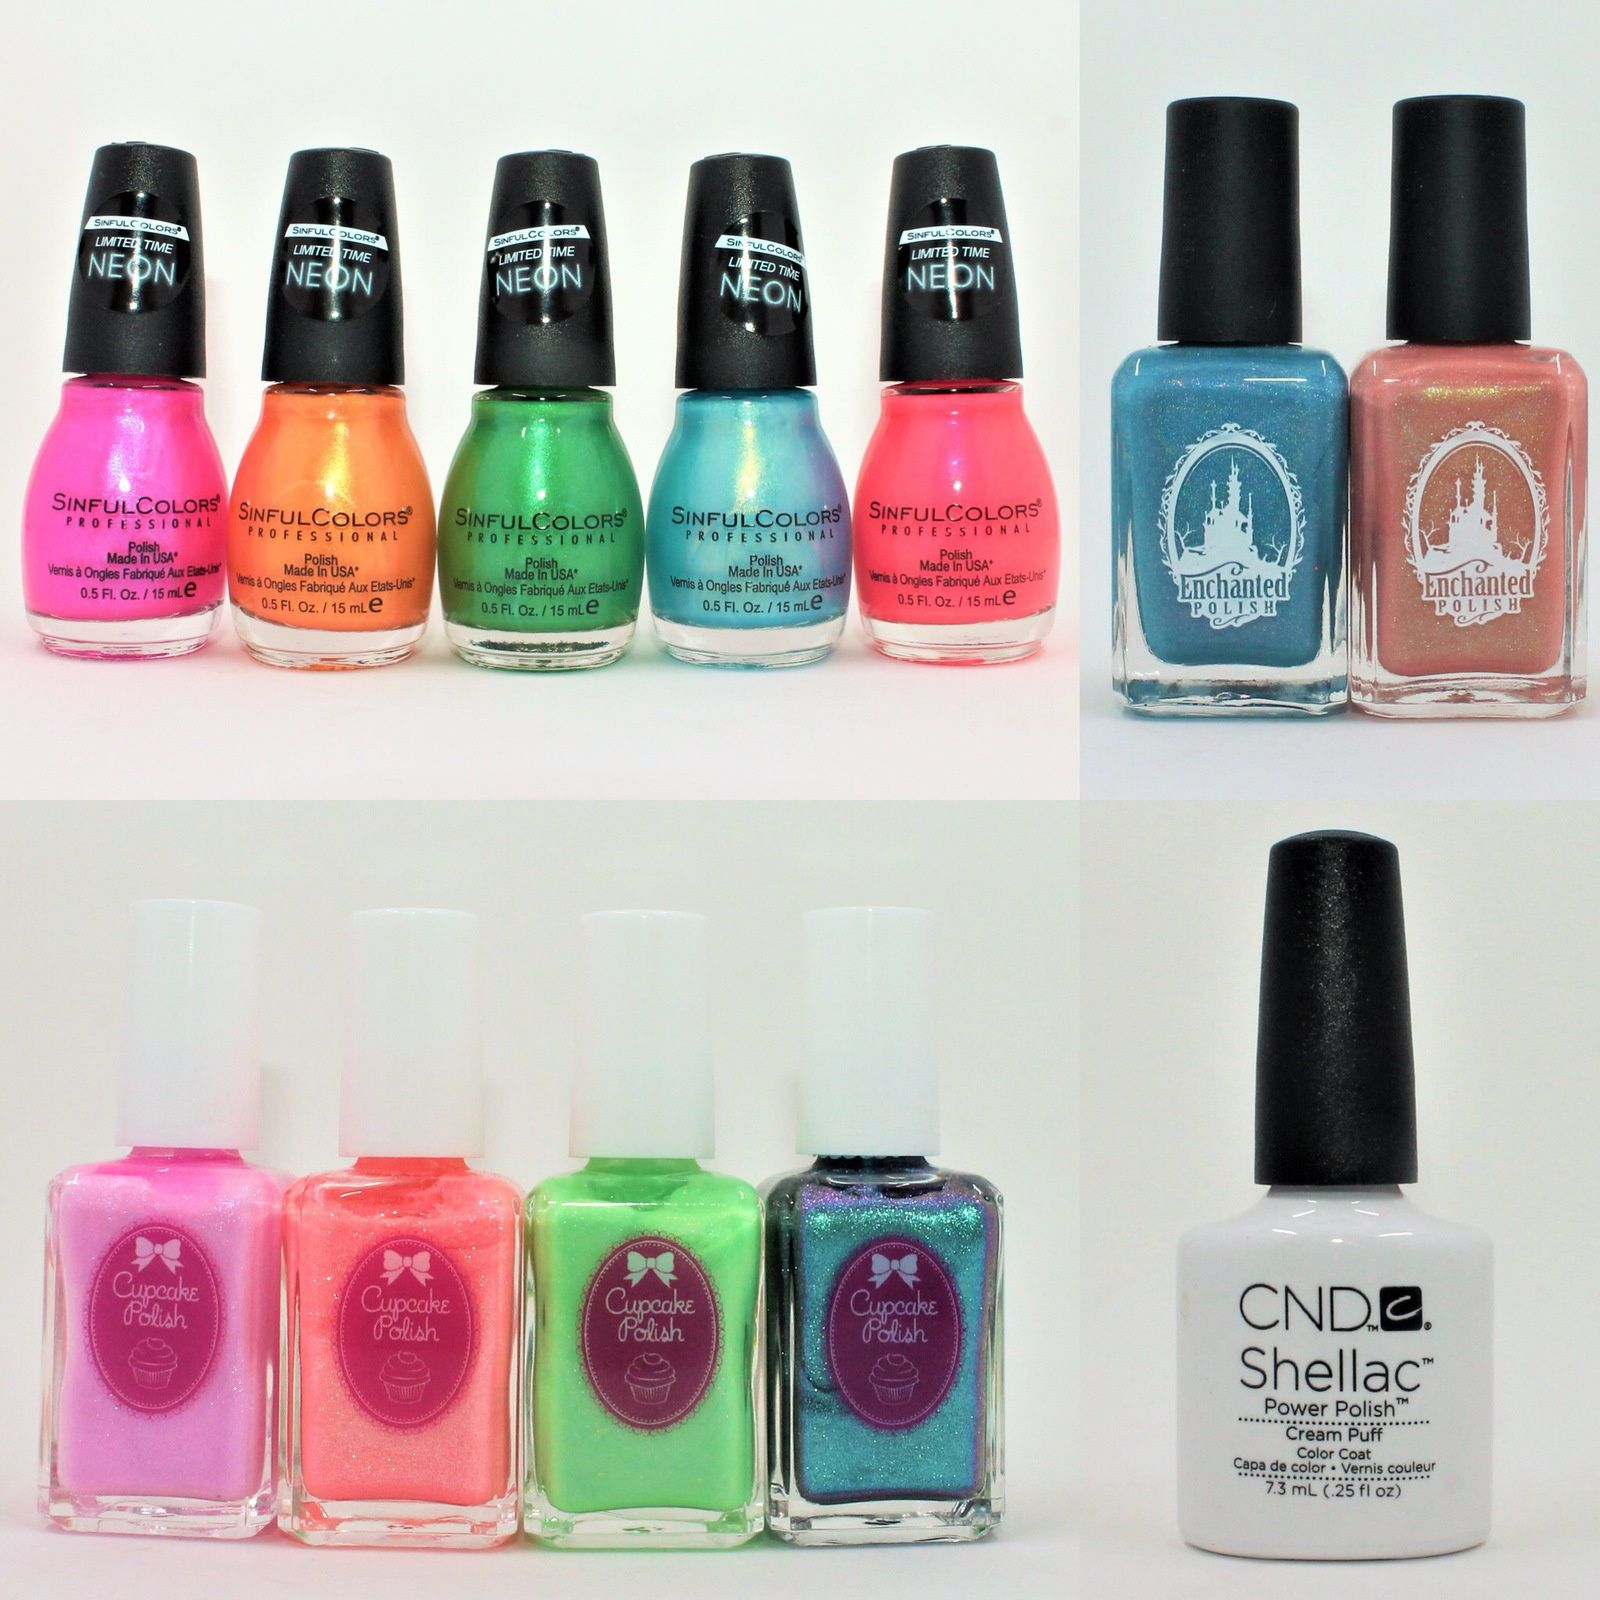 Sinful ColorsSafari Not Sorry, Off Tropic, Palm Down, Poison Arrow, Bird of Paradise. Enchanted Polish July 2018 & August 2018. Cupcake Polish I Scream for Ice Cream, It's Sherbert-day, Game of Cones, Fallout.  CNDC Shellac Cream Puff